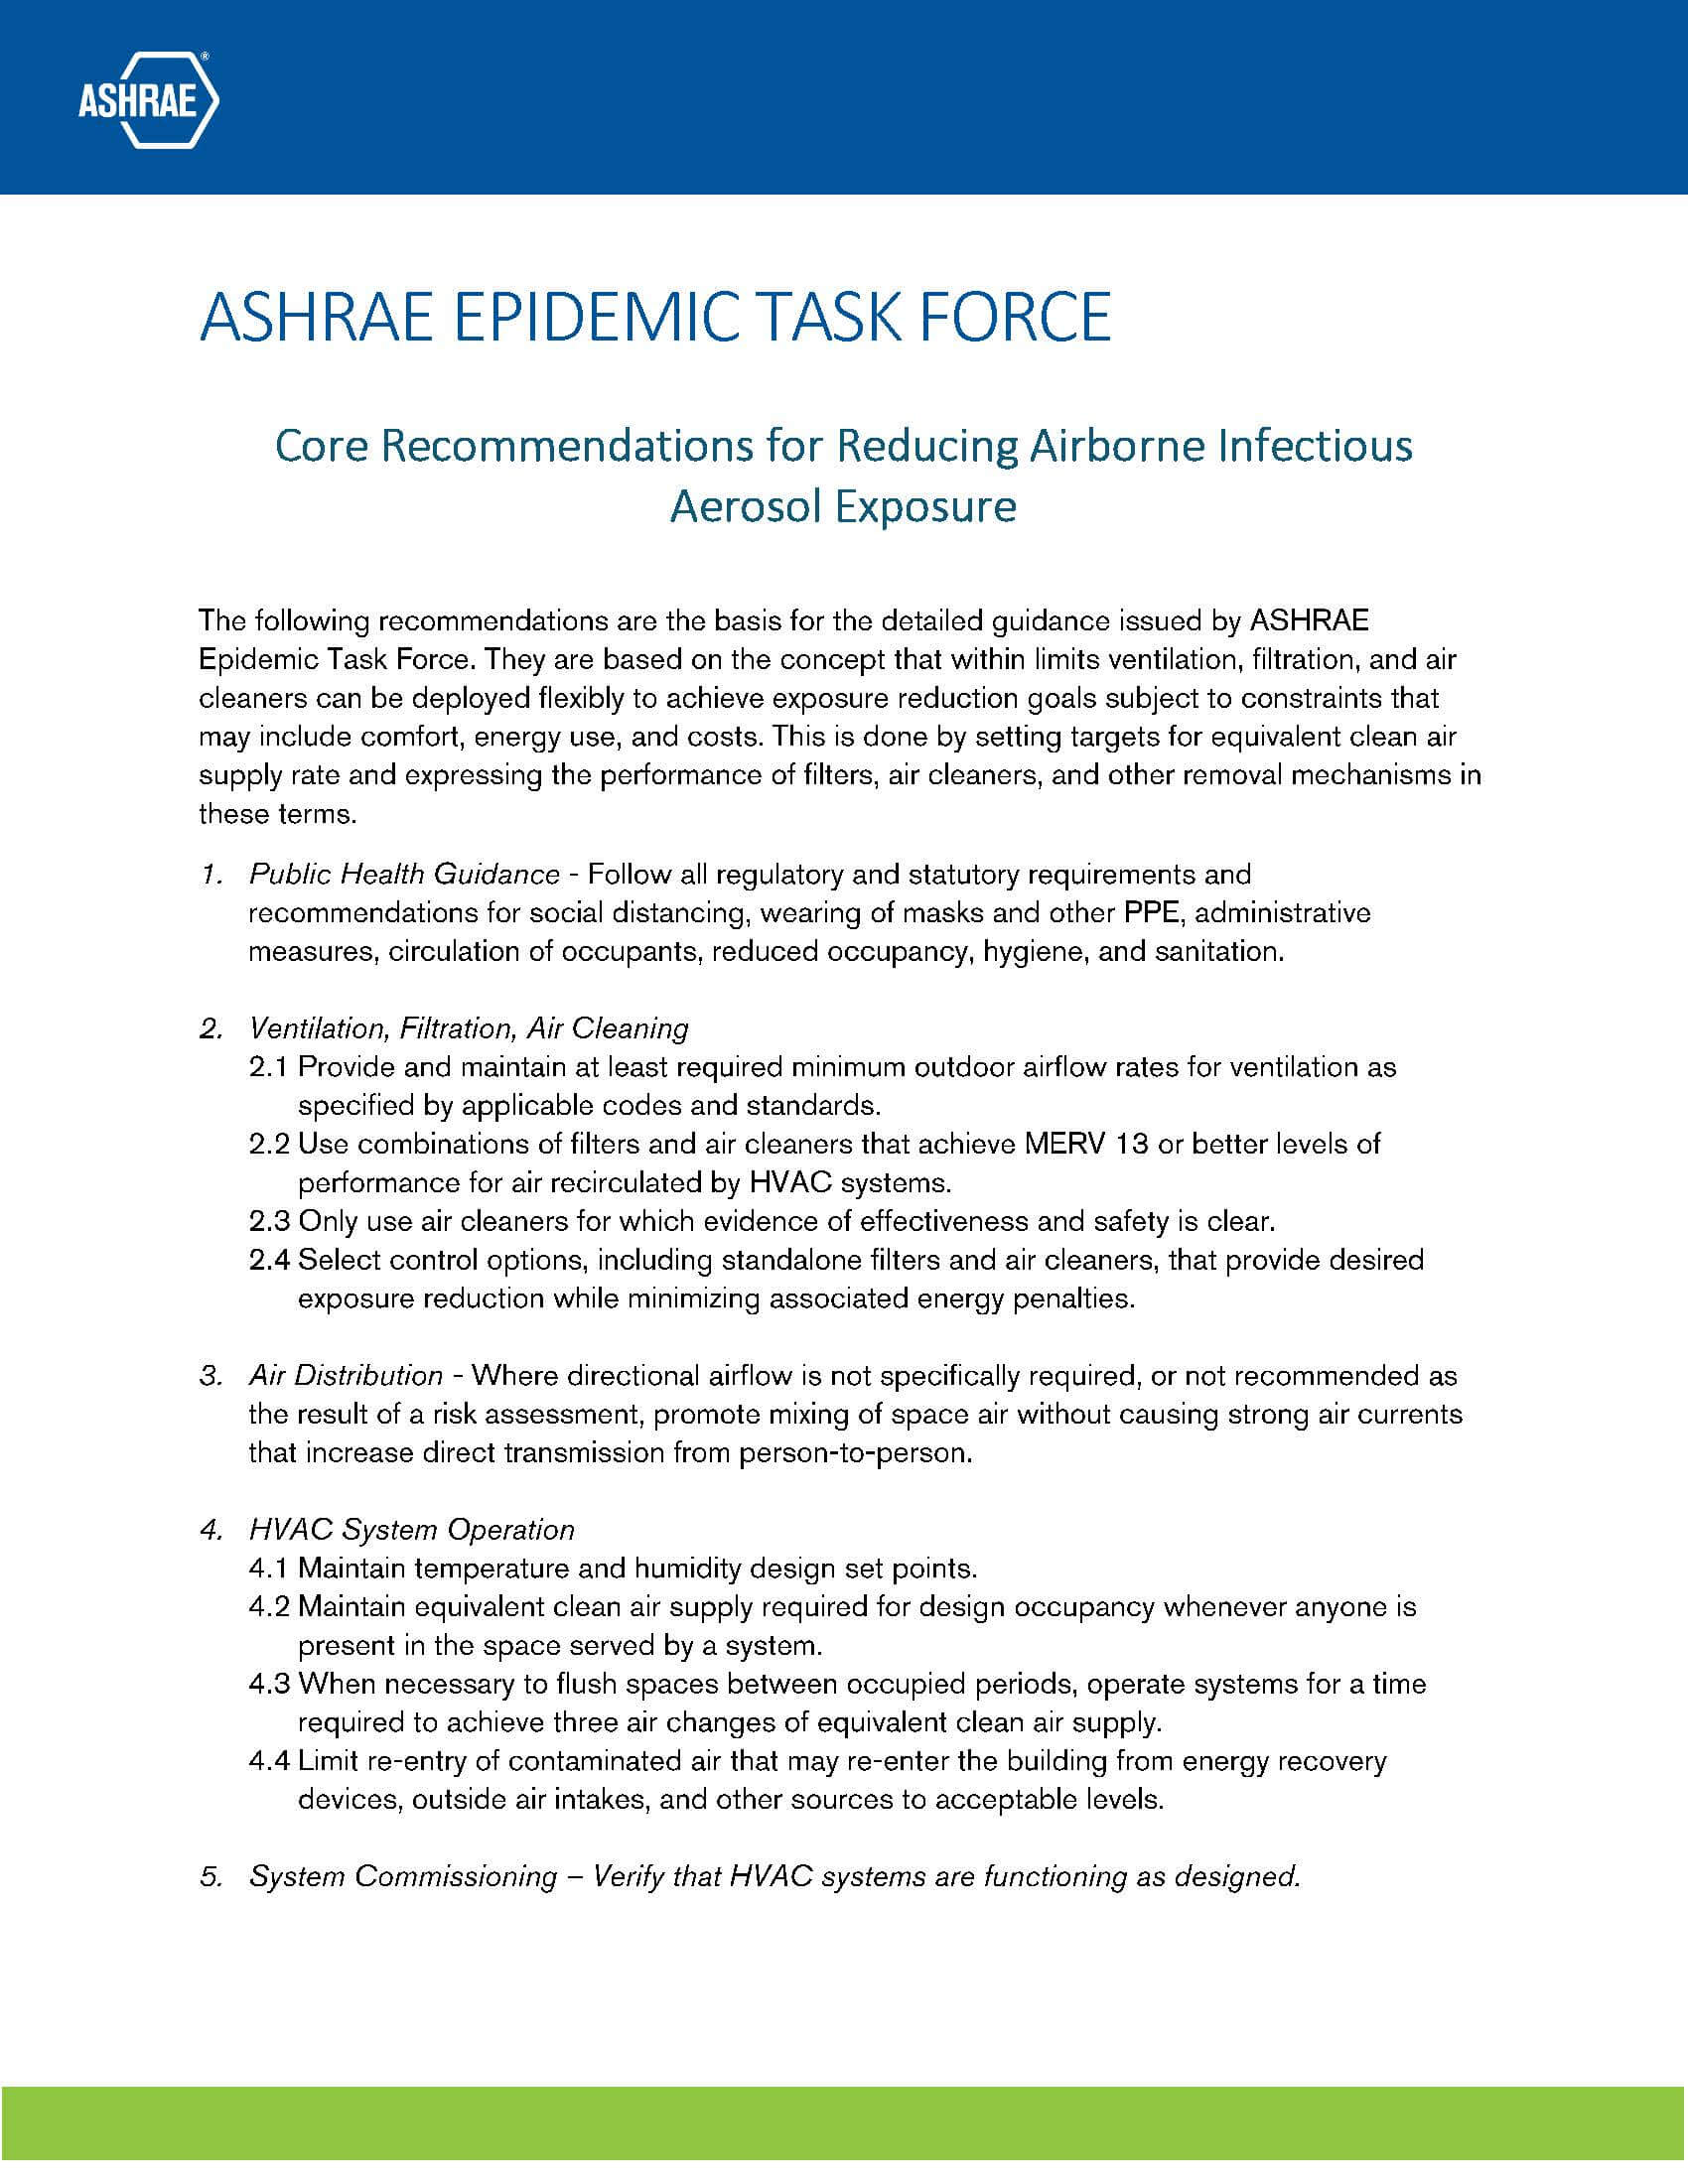 ASHRAE Core Recommendations for COVID-19